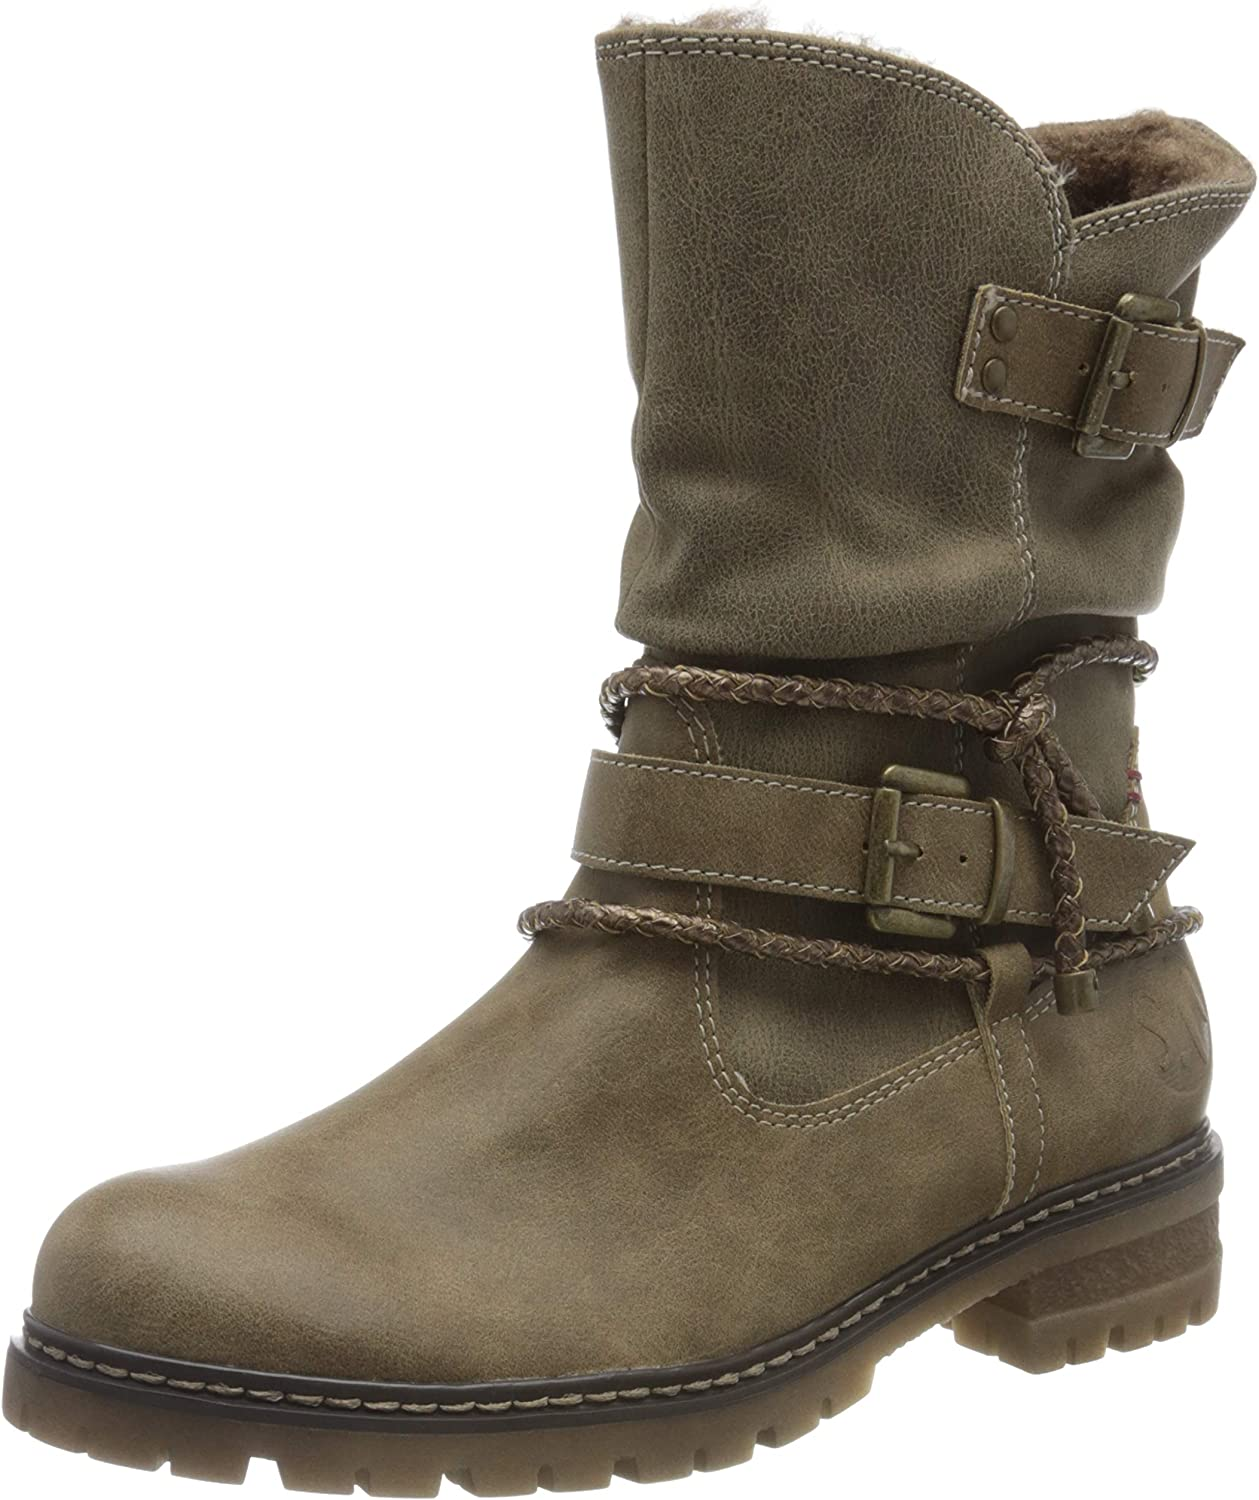 All stores are sold s.Oliver Women's Arlington Mall Bootie Boot Snow